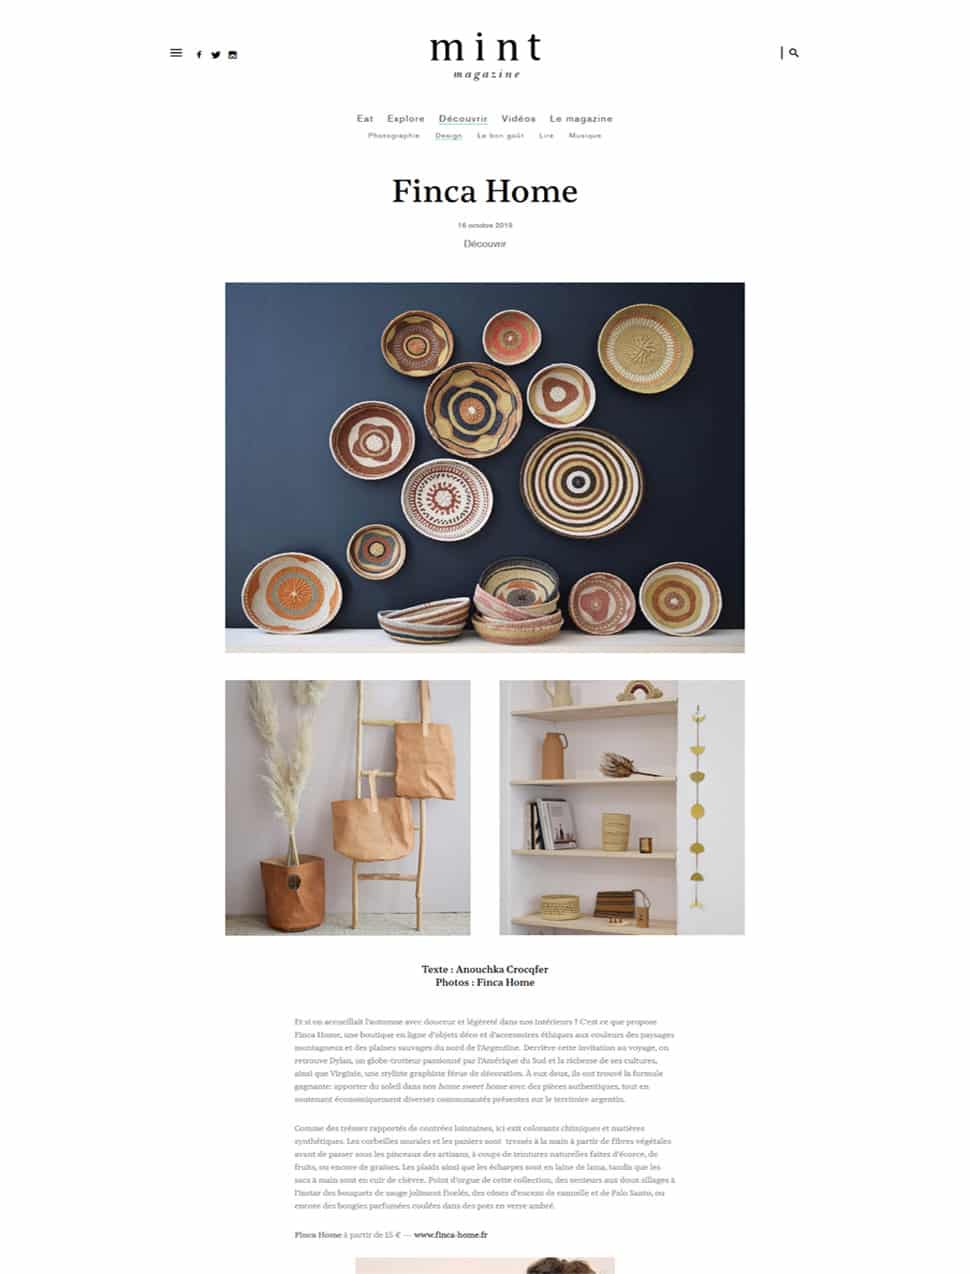 Mint Magazine Octobre 2019 - Finca Home